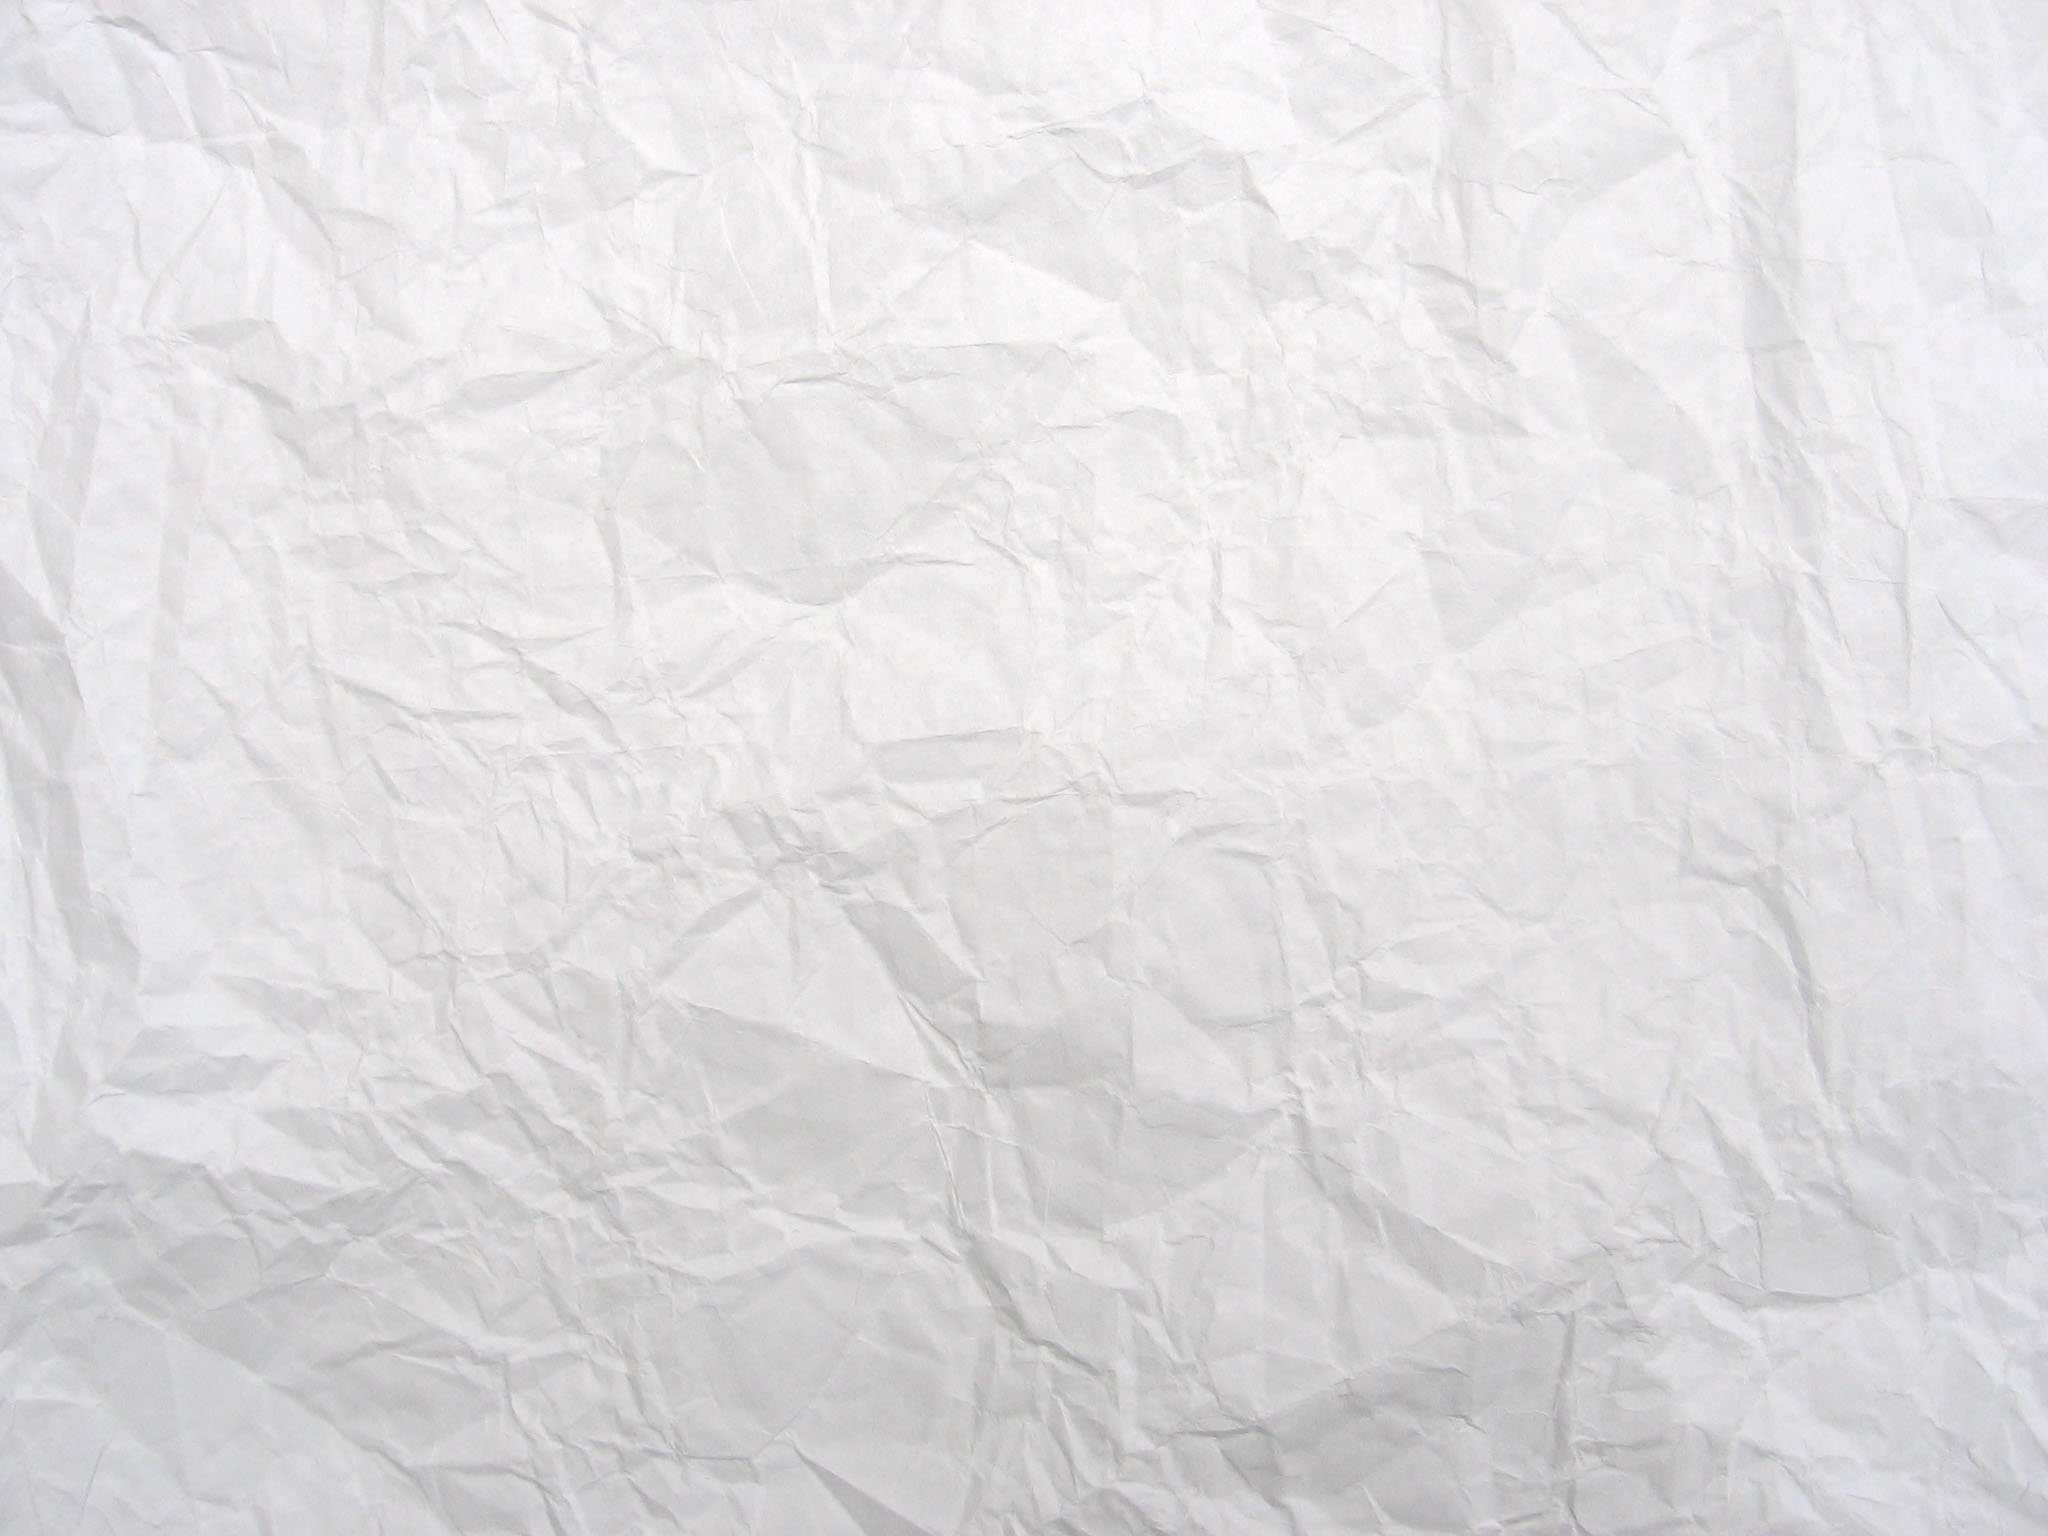 Crumpled White Wallpaper 2048x1536 Crumpled White Paper Texture By 2048x1536